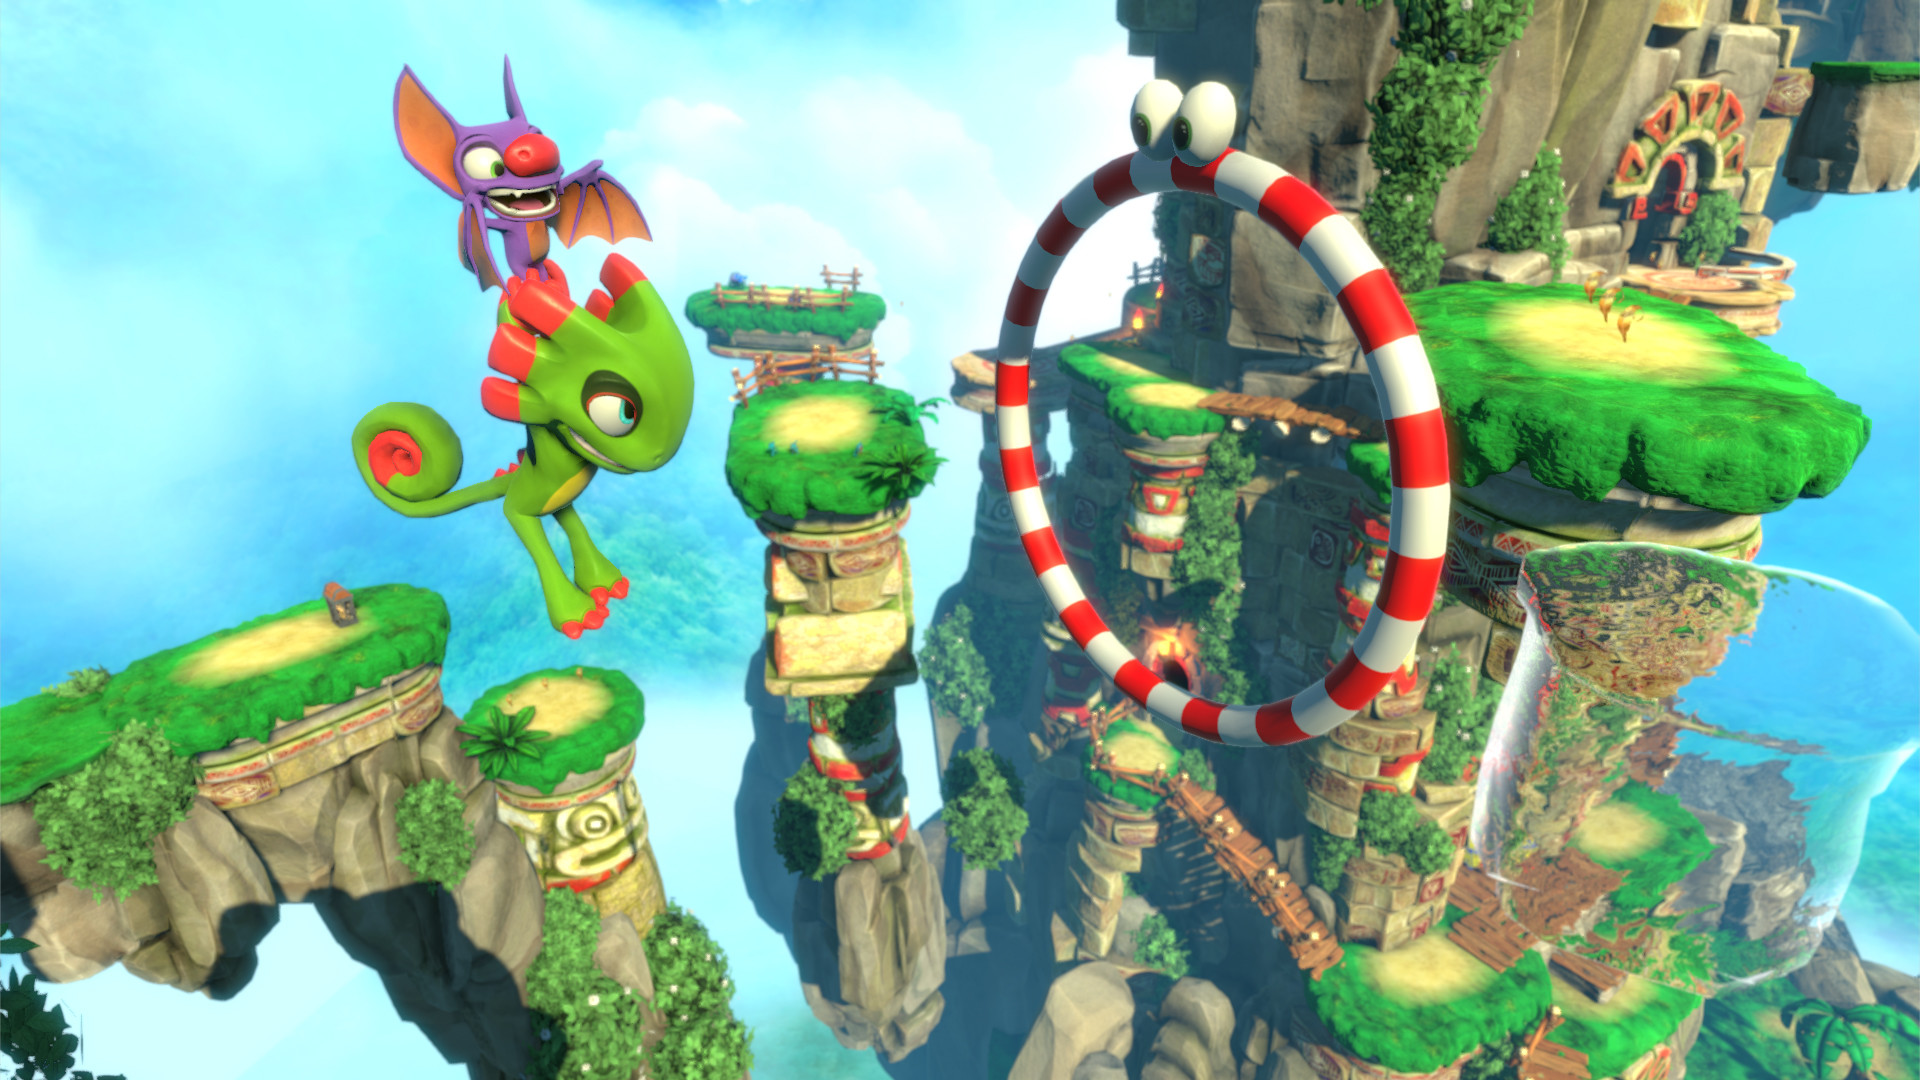 Yooka-Laylee's latest patch fixes camera issues with manual mode 1